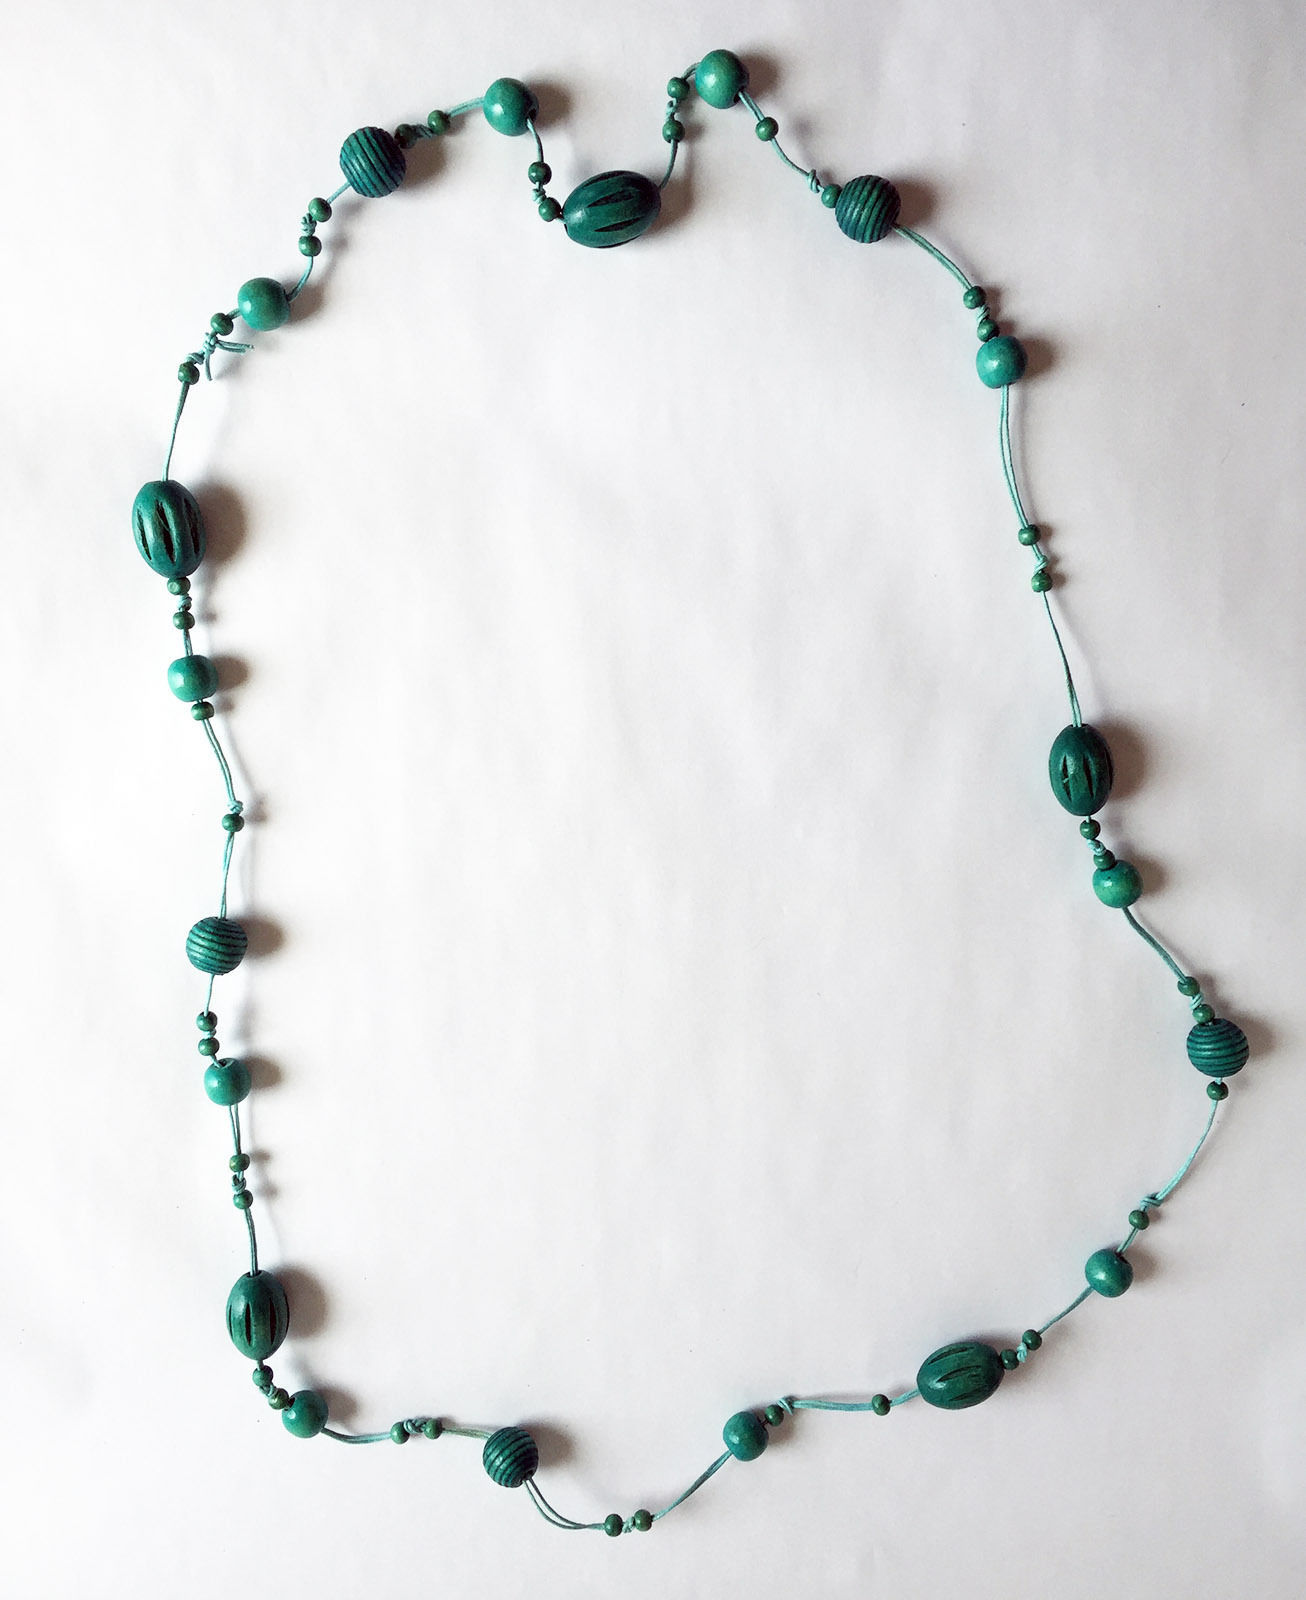 """Wood Bead and Cord Necklace Long 54"""" image 2"""